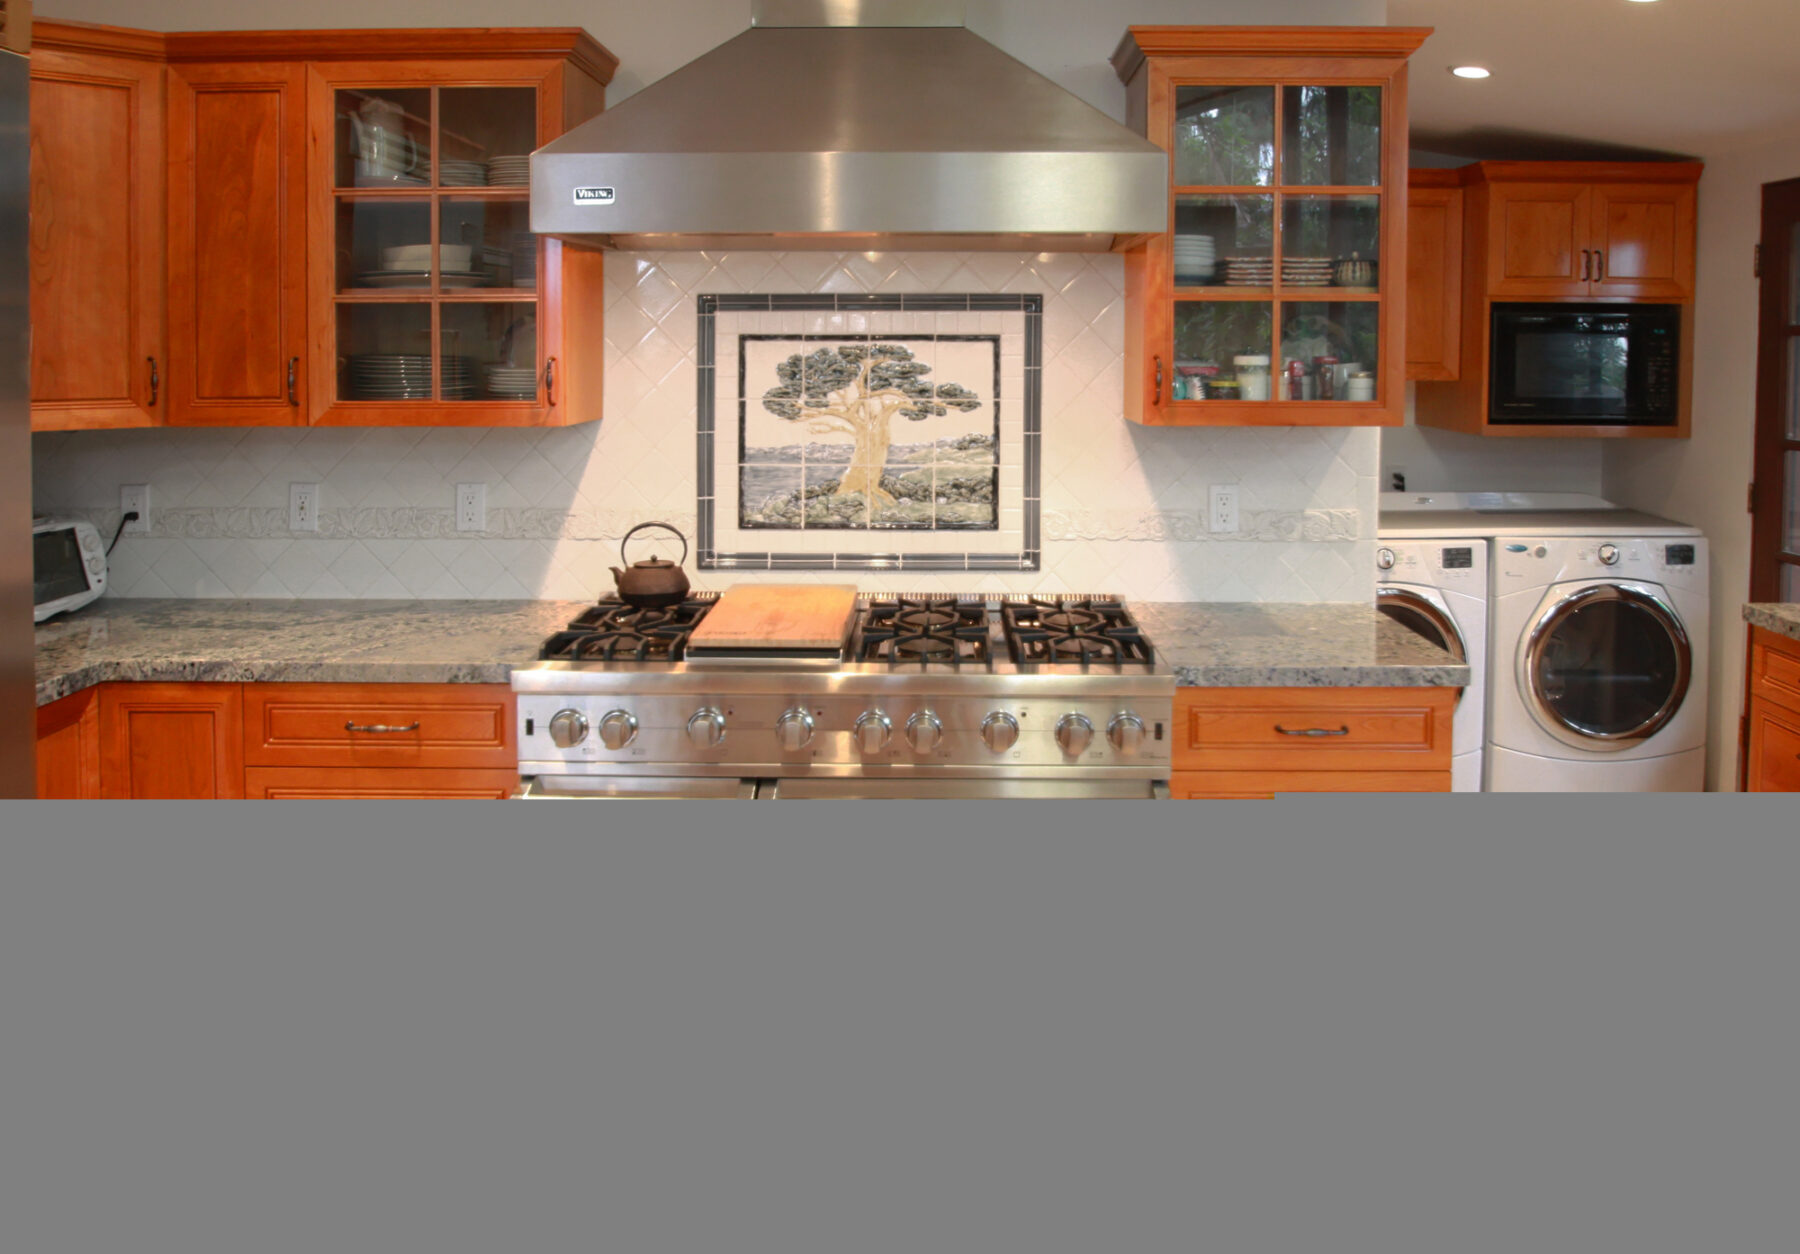 Stainless steel range and hood with Pratt Larson tile